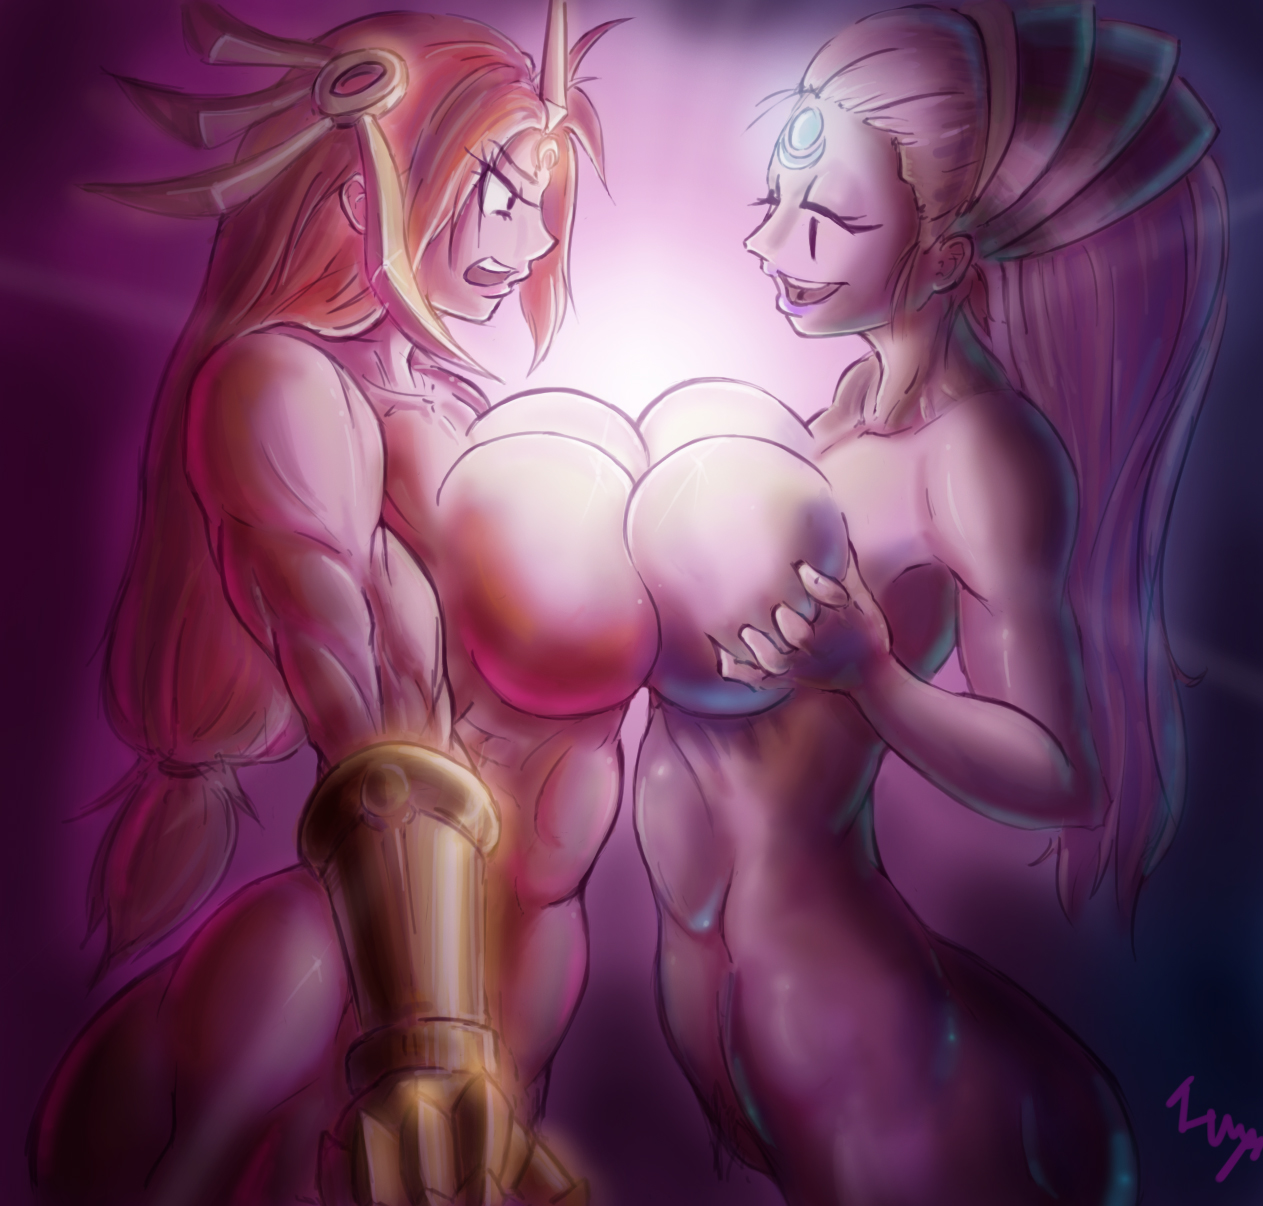 Diana and leona crazy big boobs